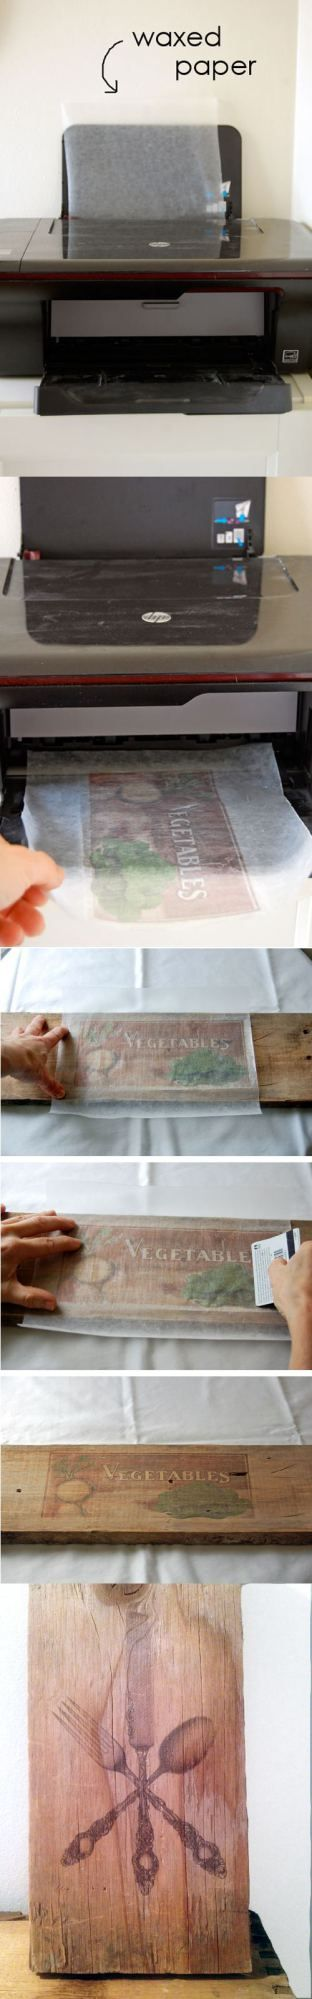 Transfer an image easily to wood or other surface with wax paper.